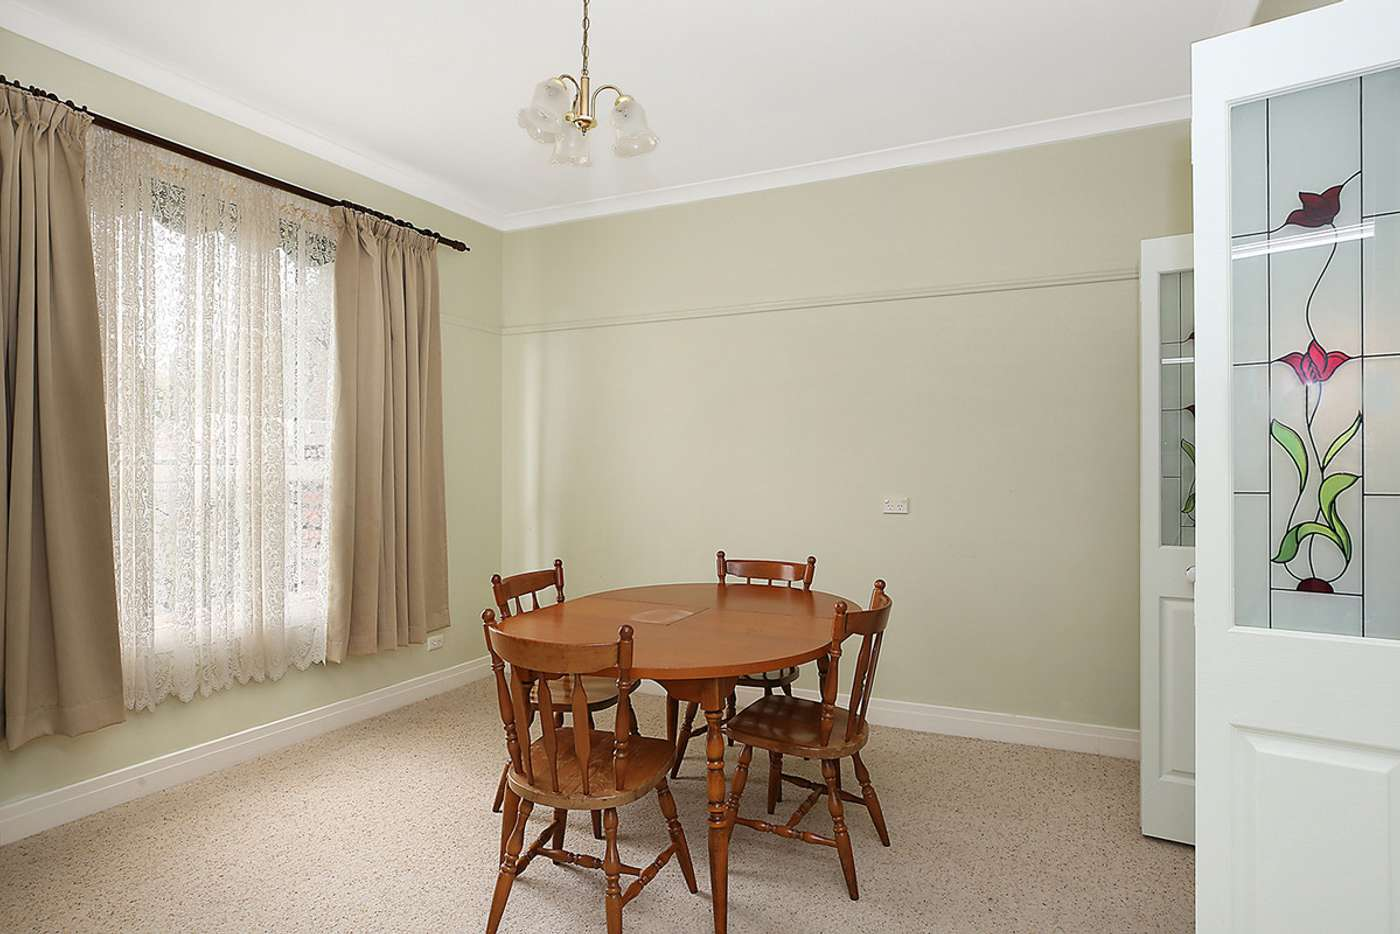 Fifth view of Homely house listing, 28 McDonald Street, Colac VIC 3250